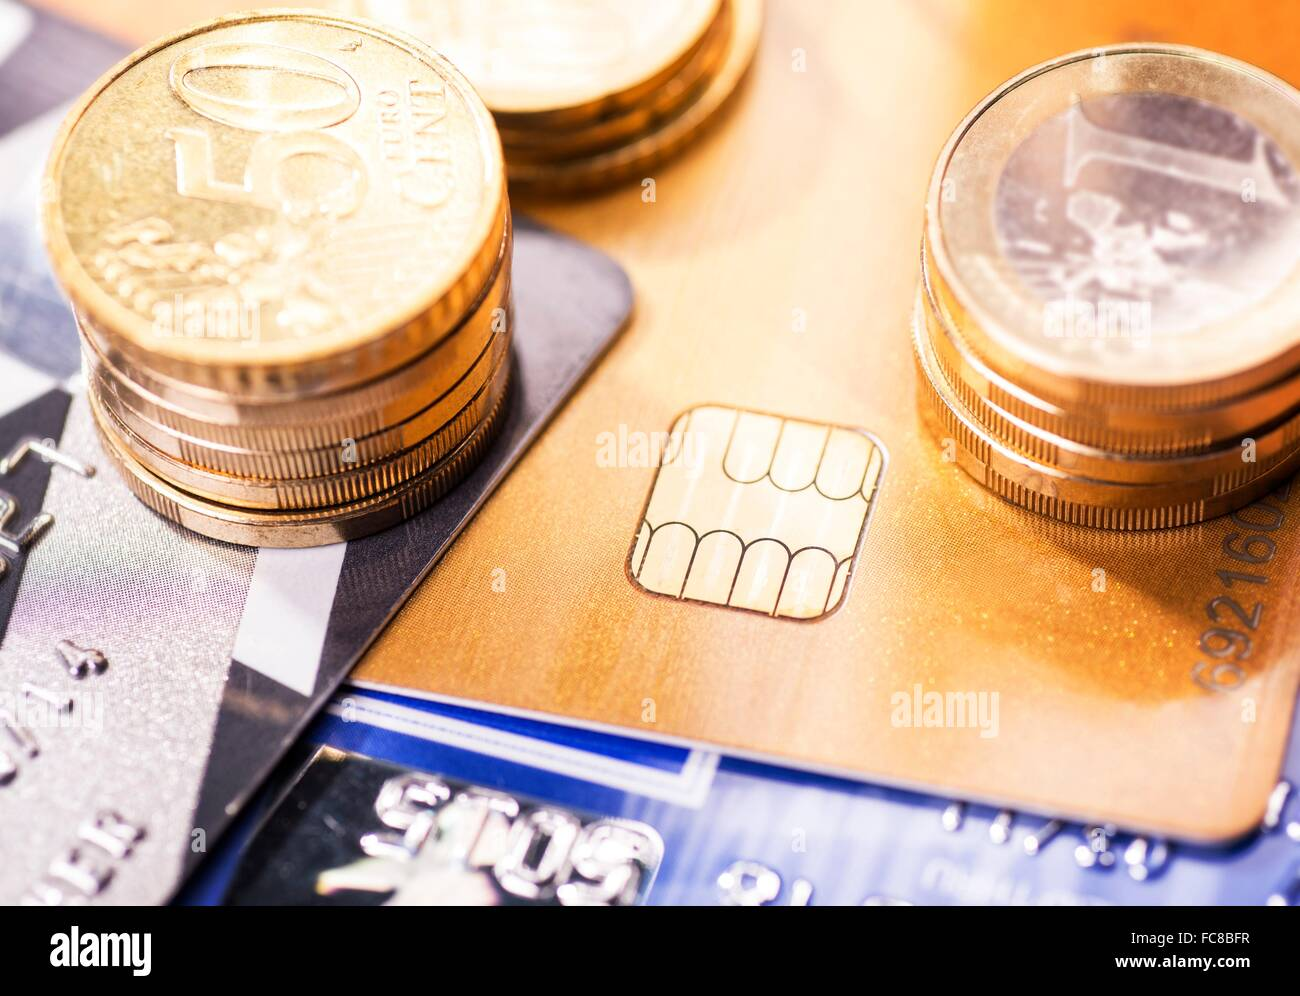 Smart card with chip and coins - Stock Image